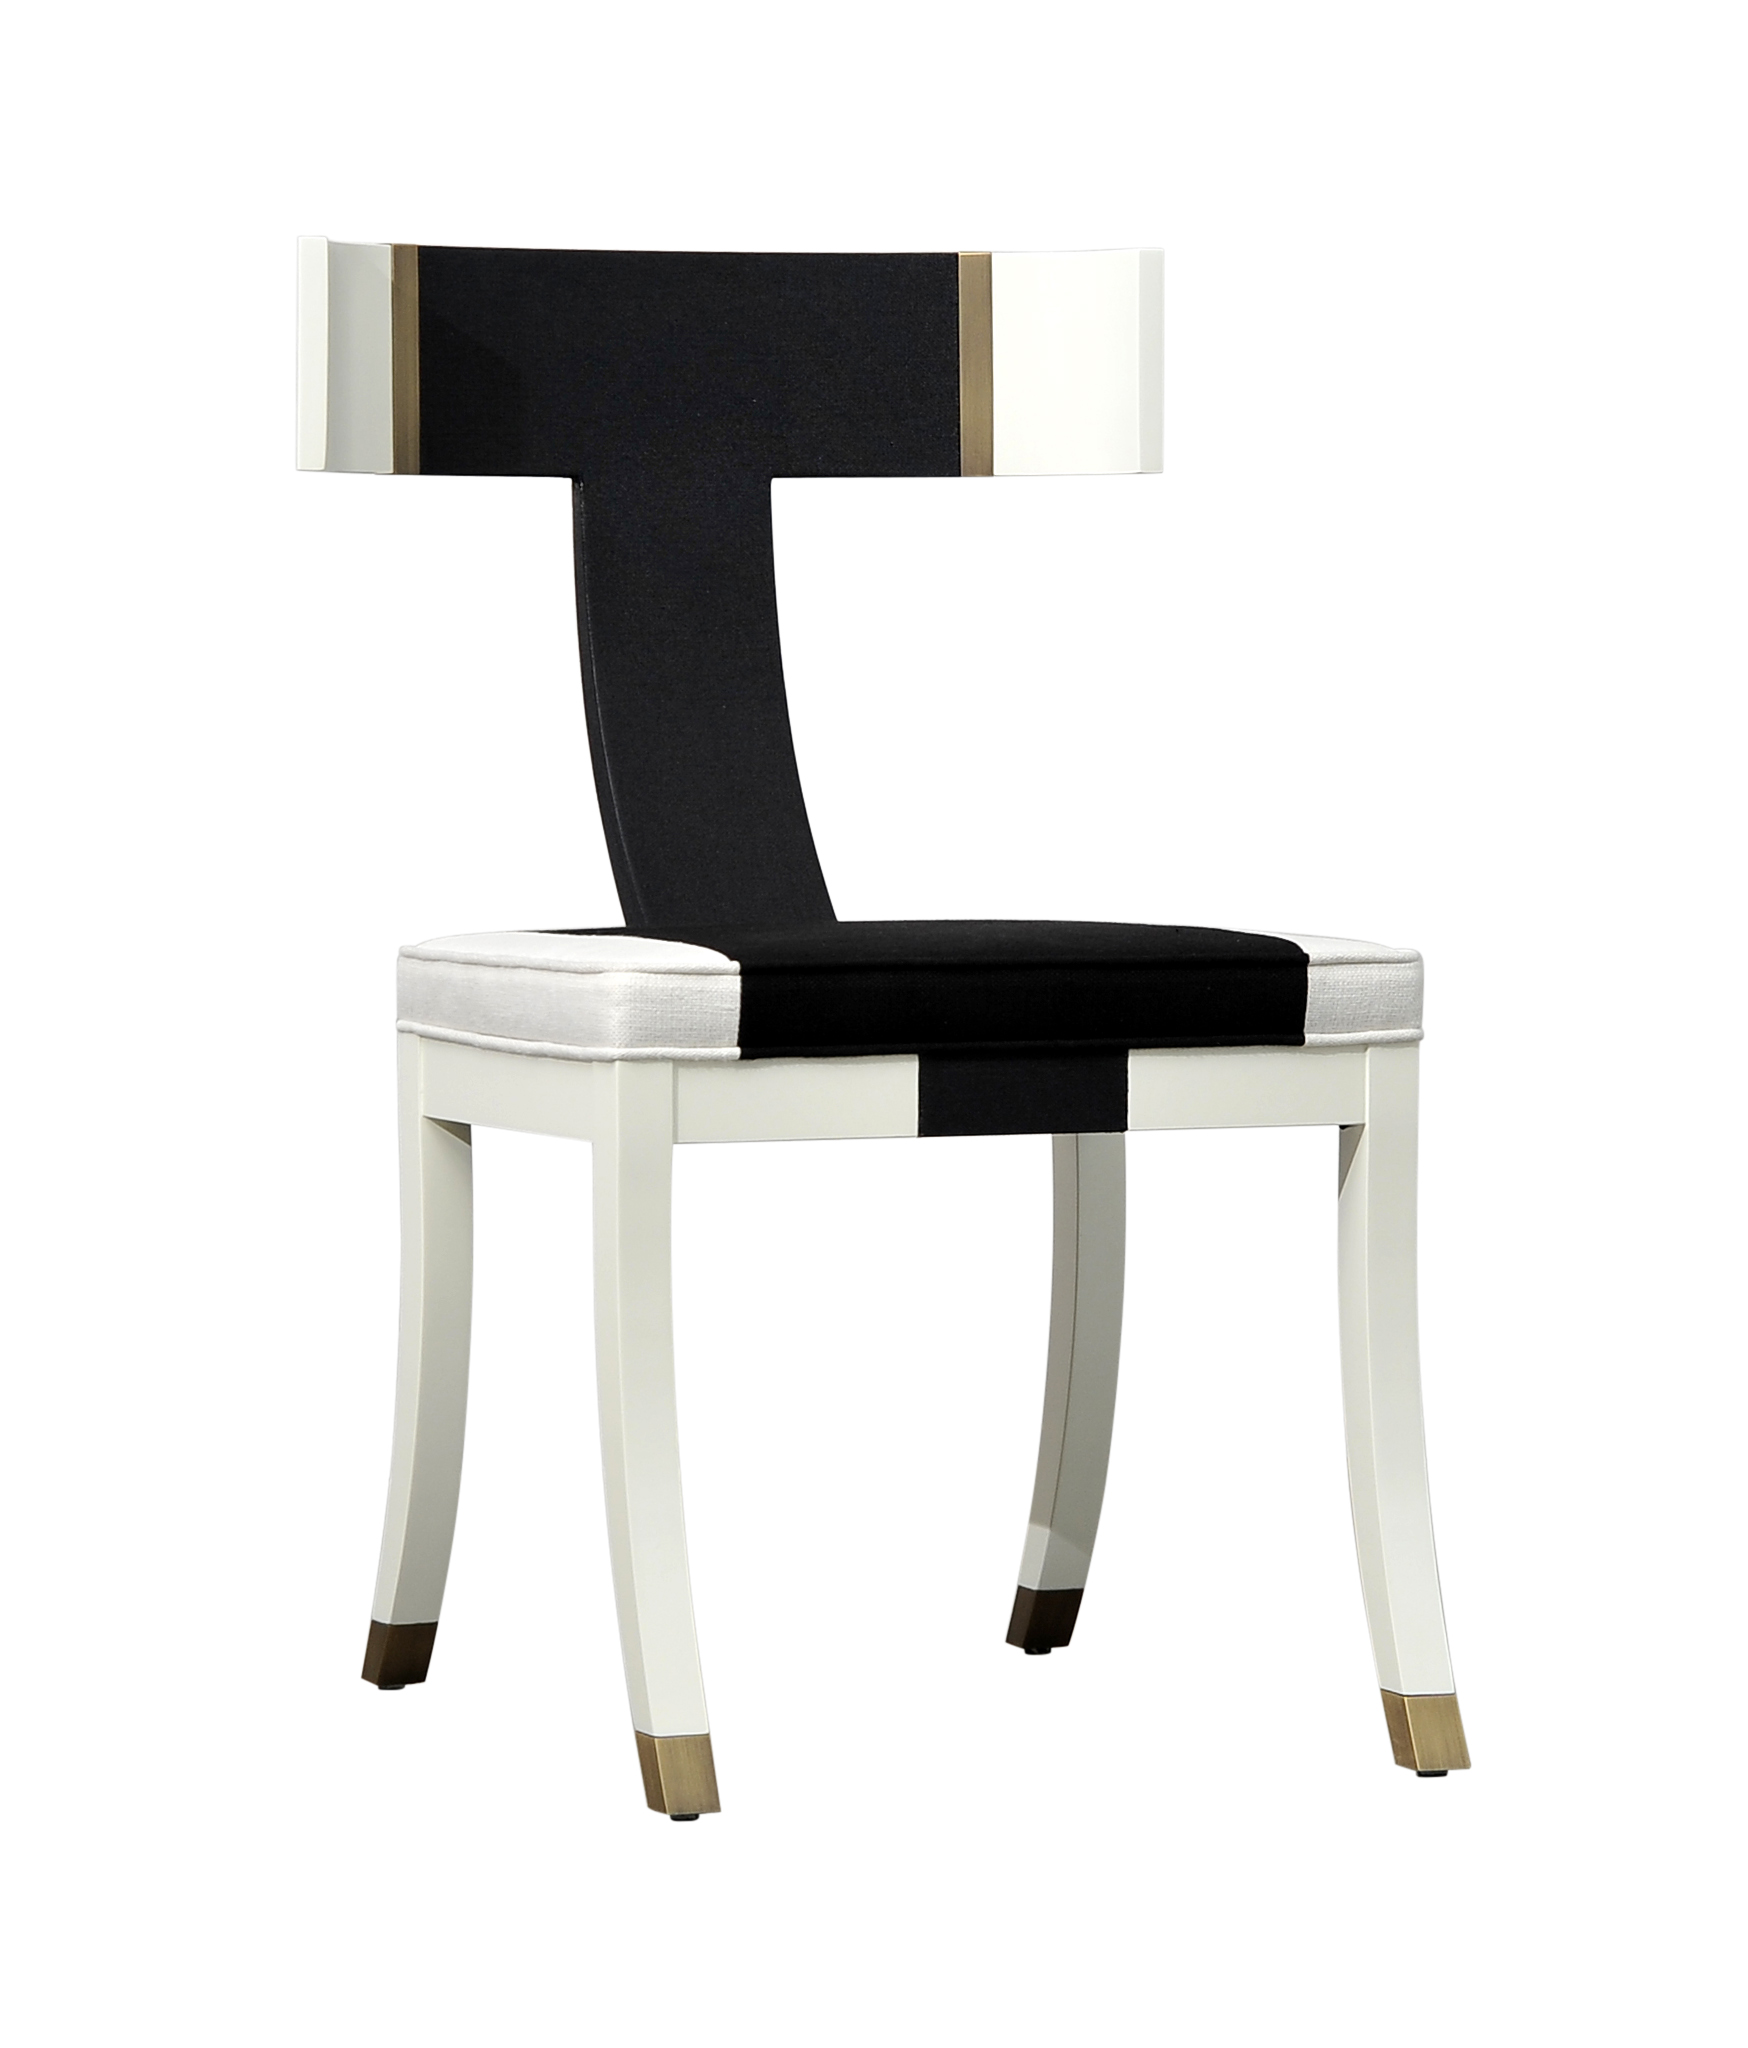 Peter Hunter Design for Decca London // Bespoke Side Chair